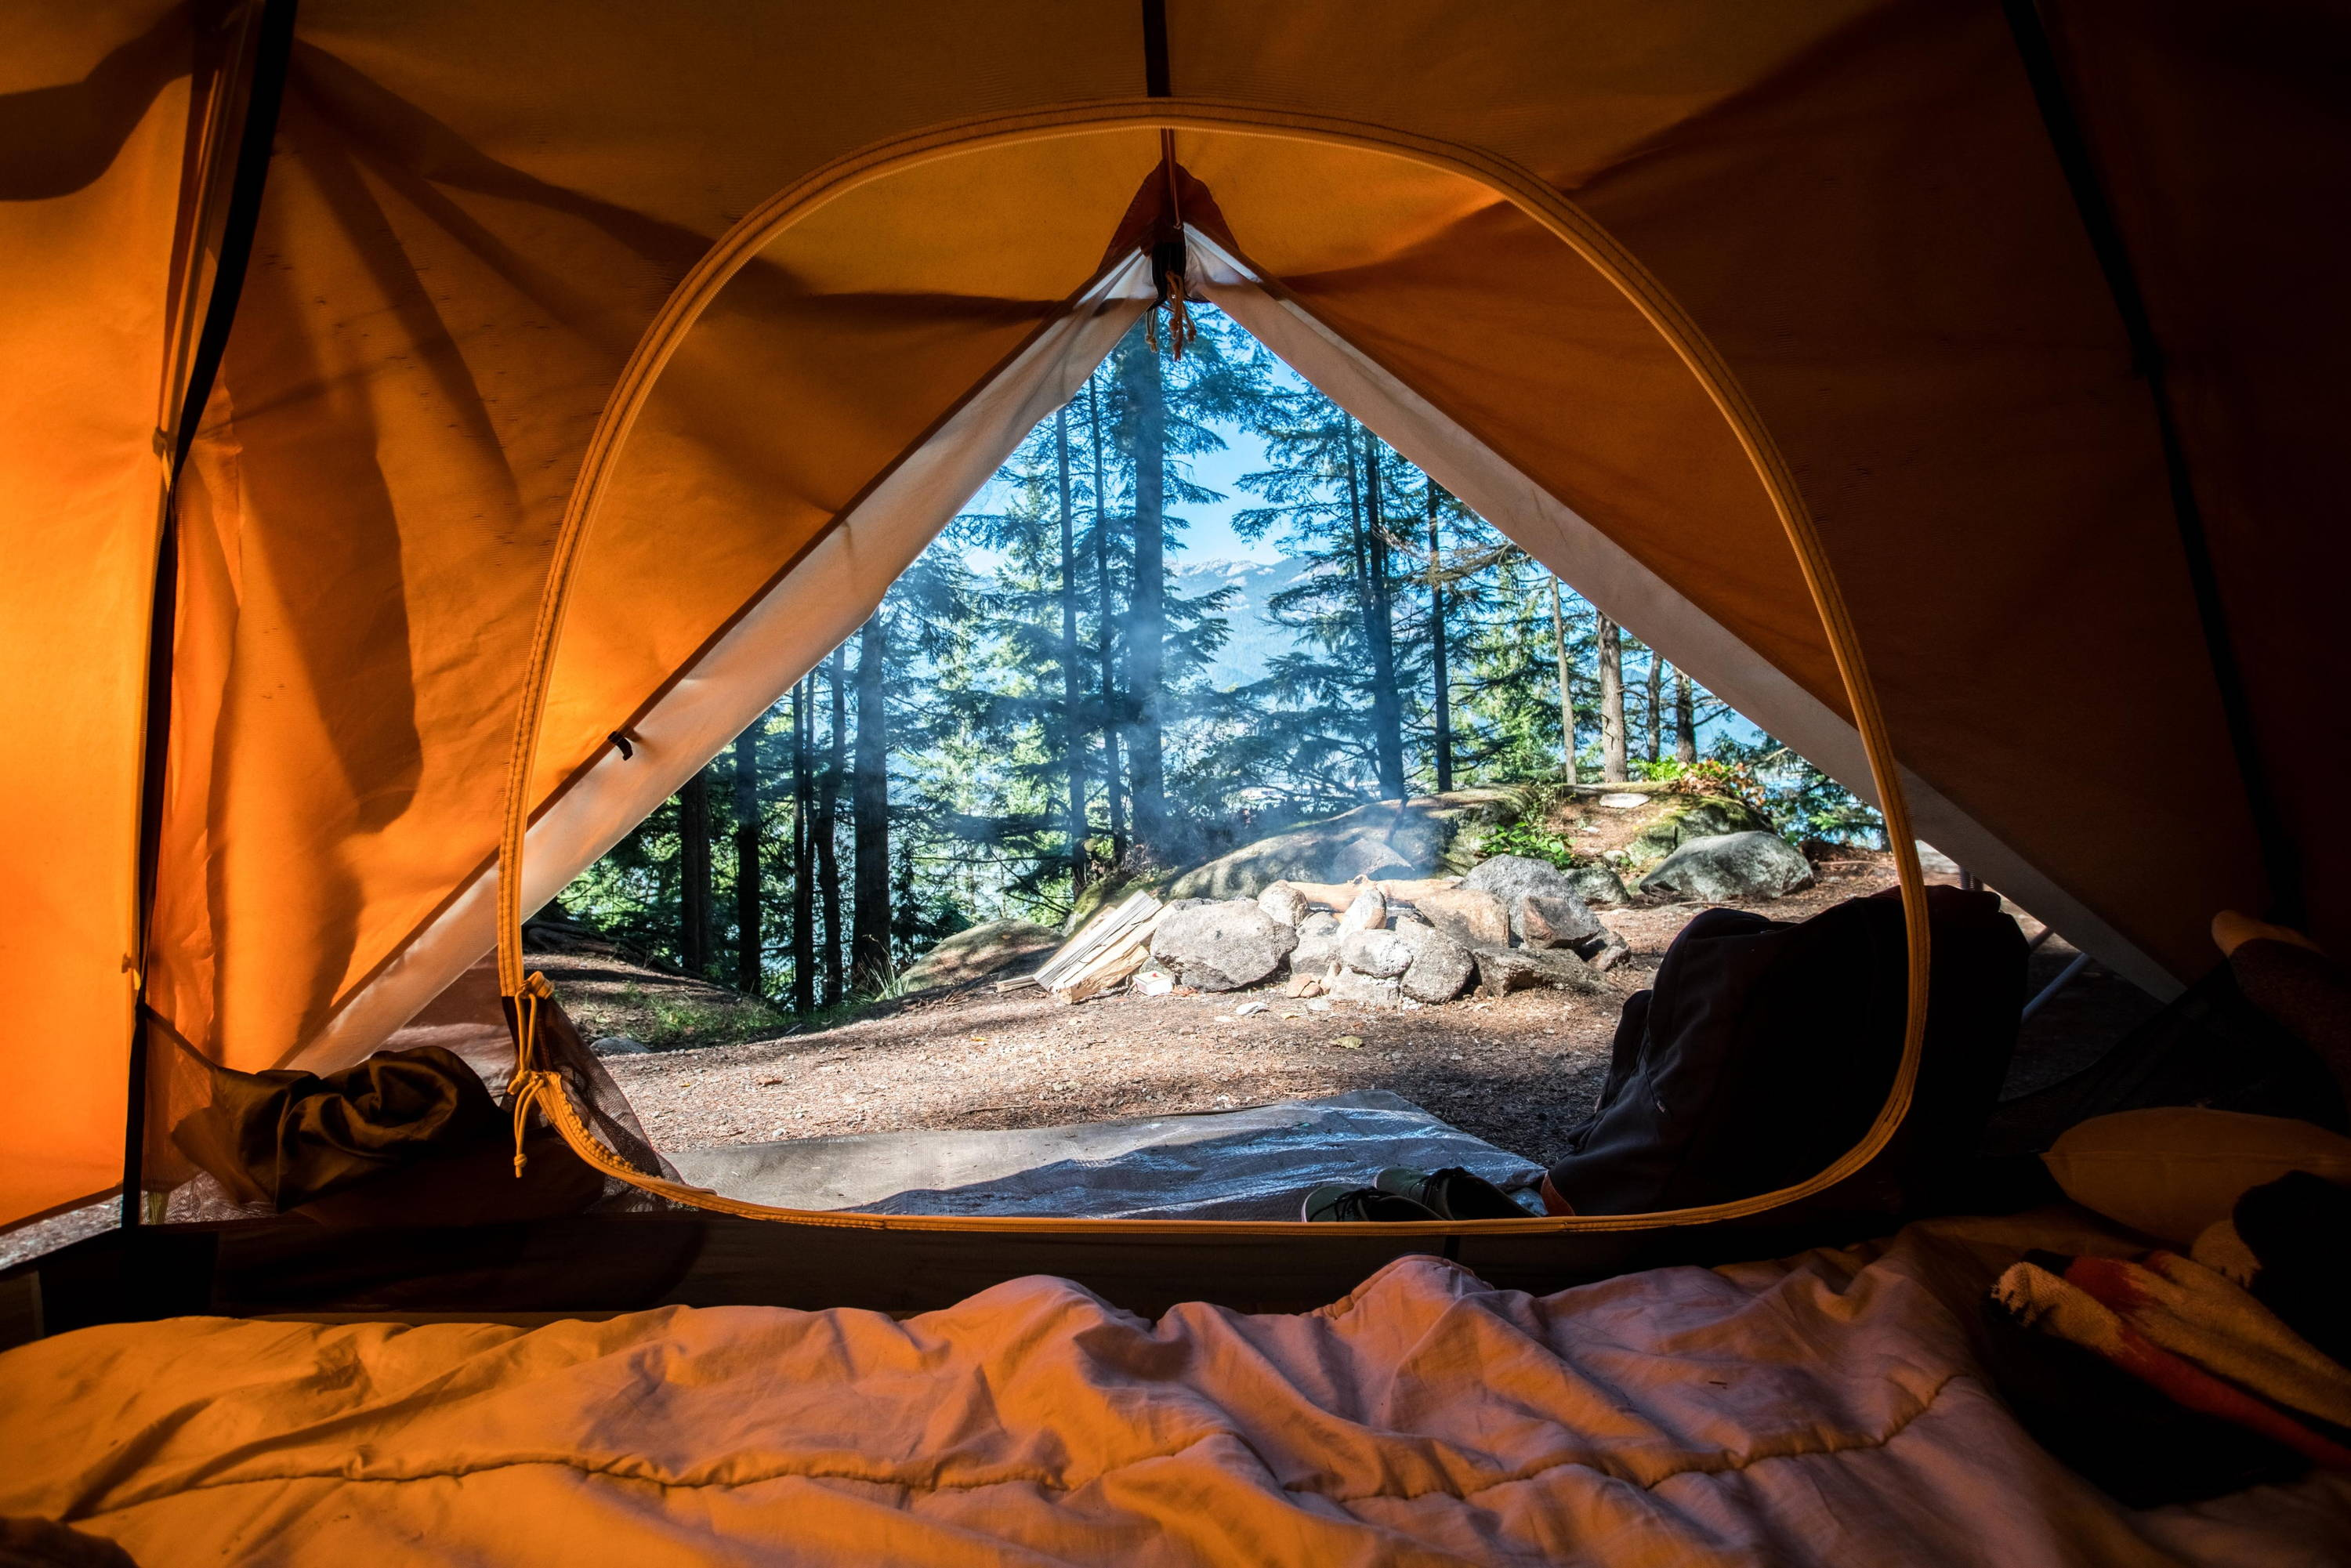 View of tent opening peering into forest outside.